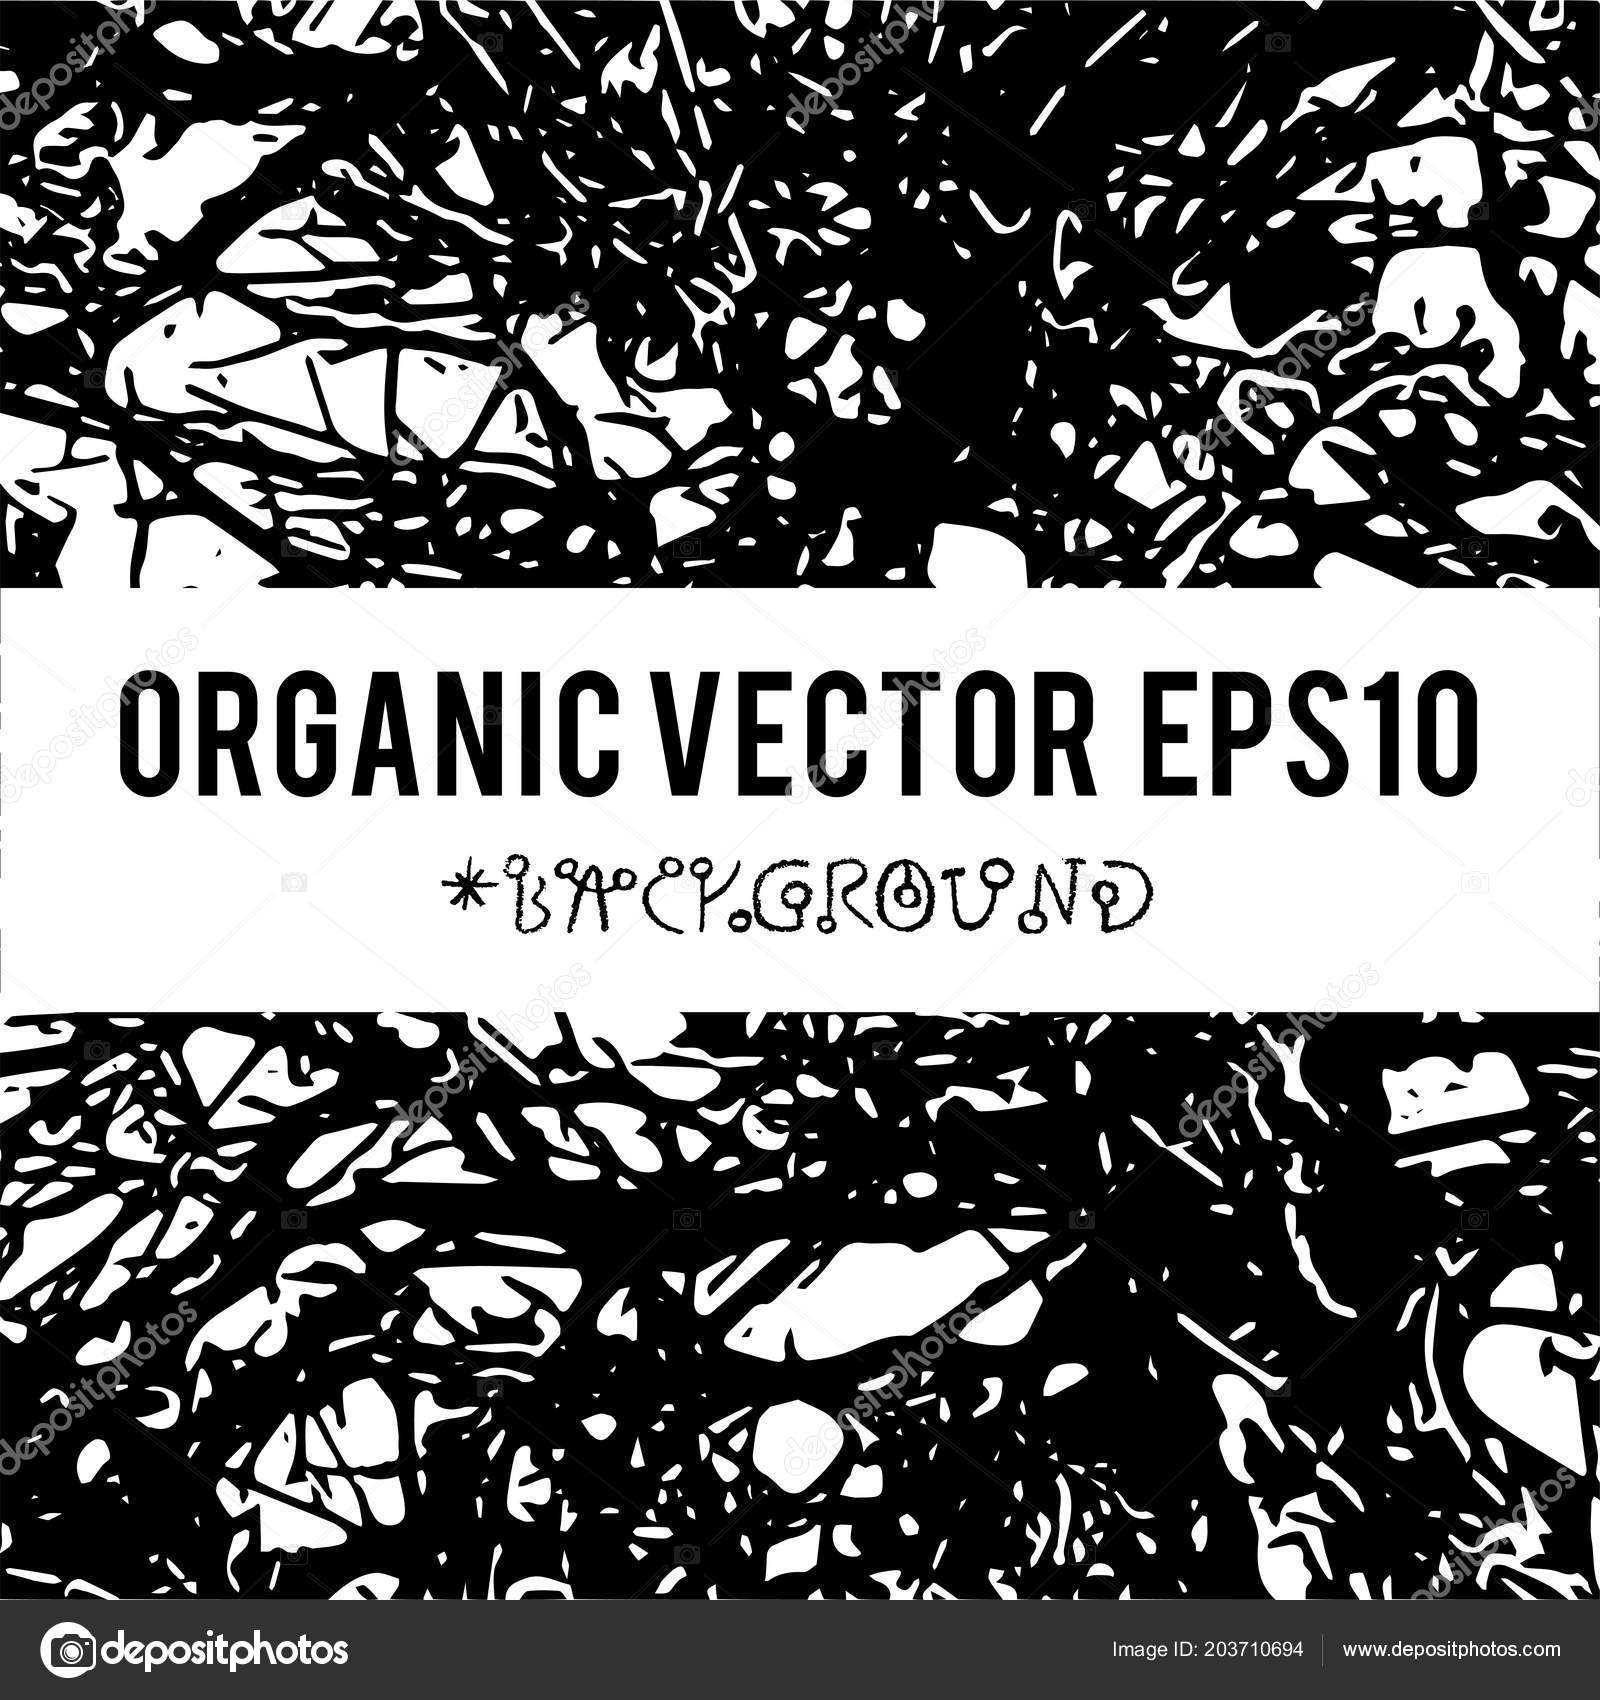 Organic Vector Background Nature Foliage Textures Dark Grunge Items